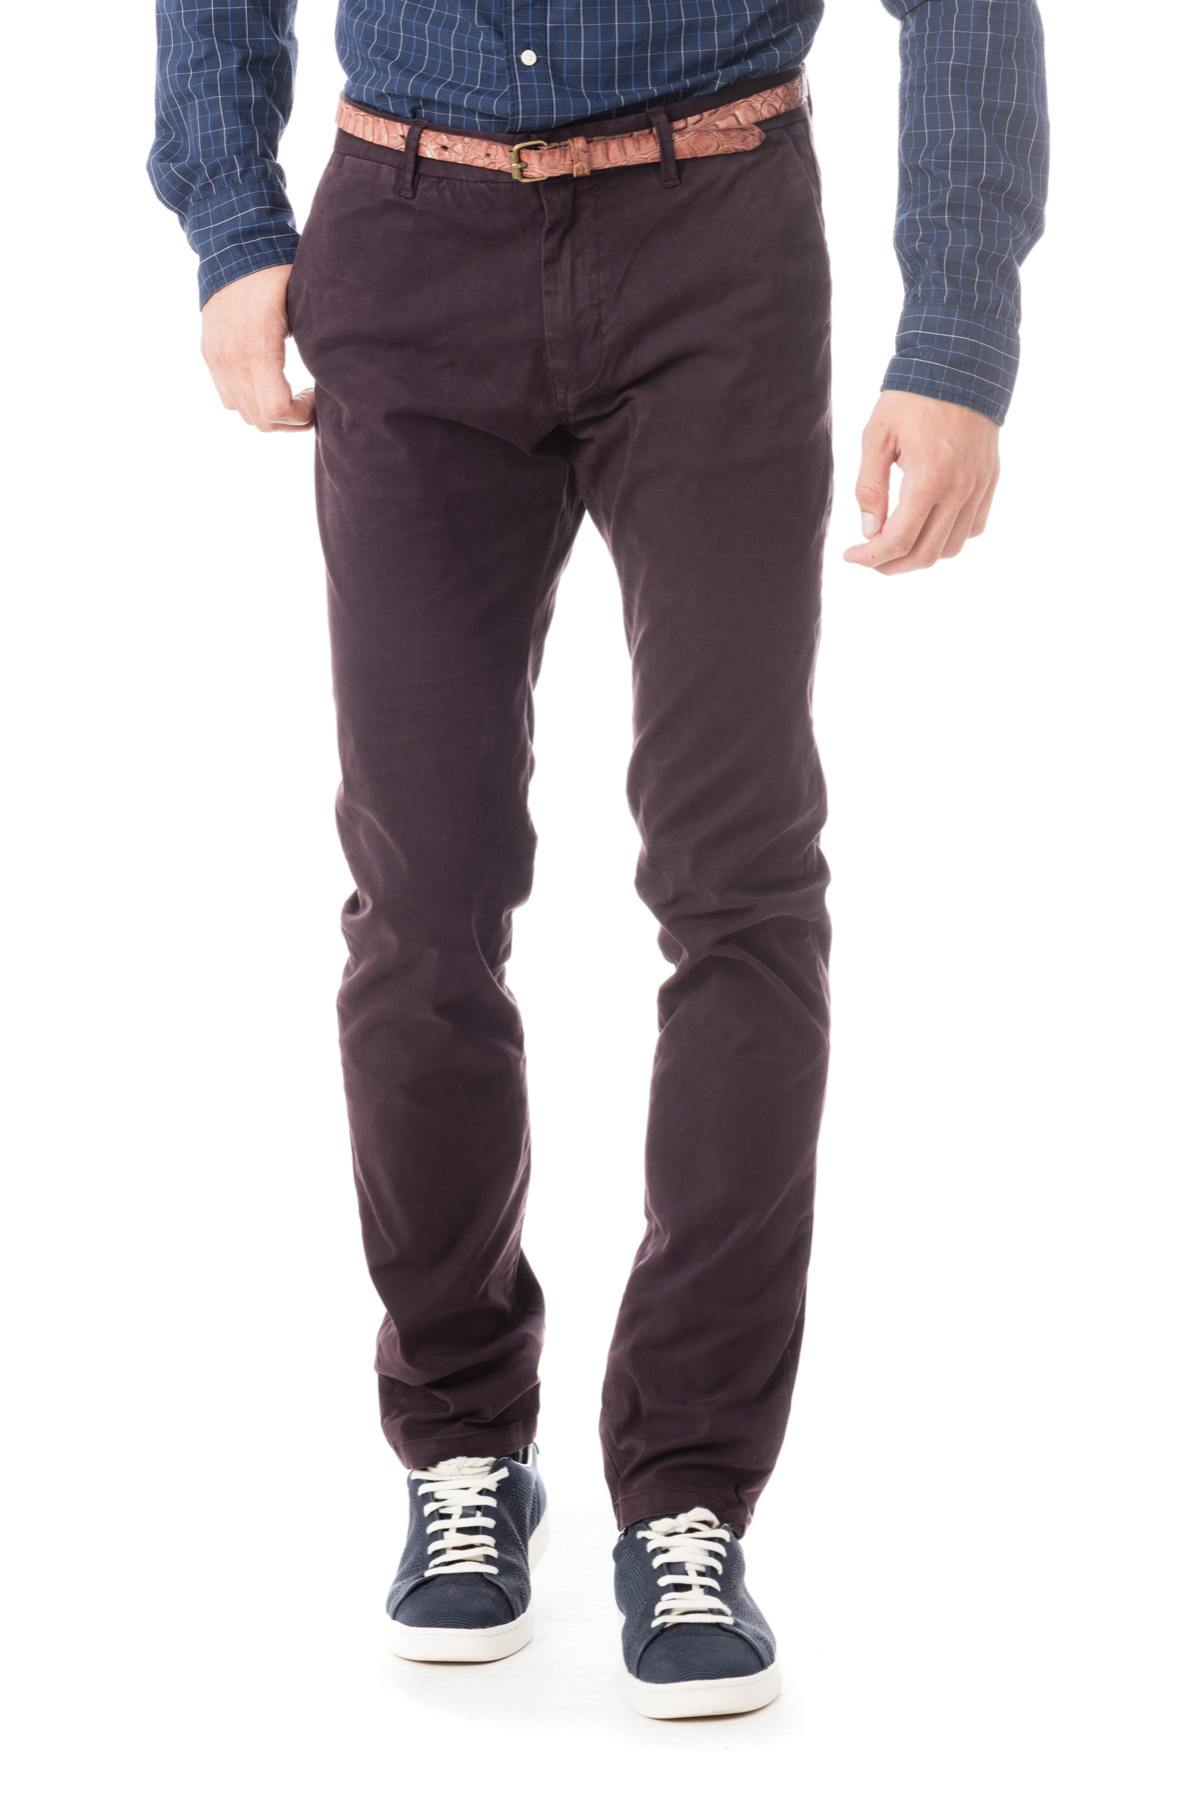 b64e6df3676 big -Scotch-and-Soda-Pantalon-chino-prune-file-57f662b0de9d5.jpg